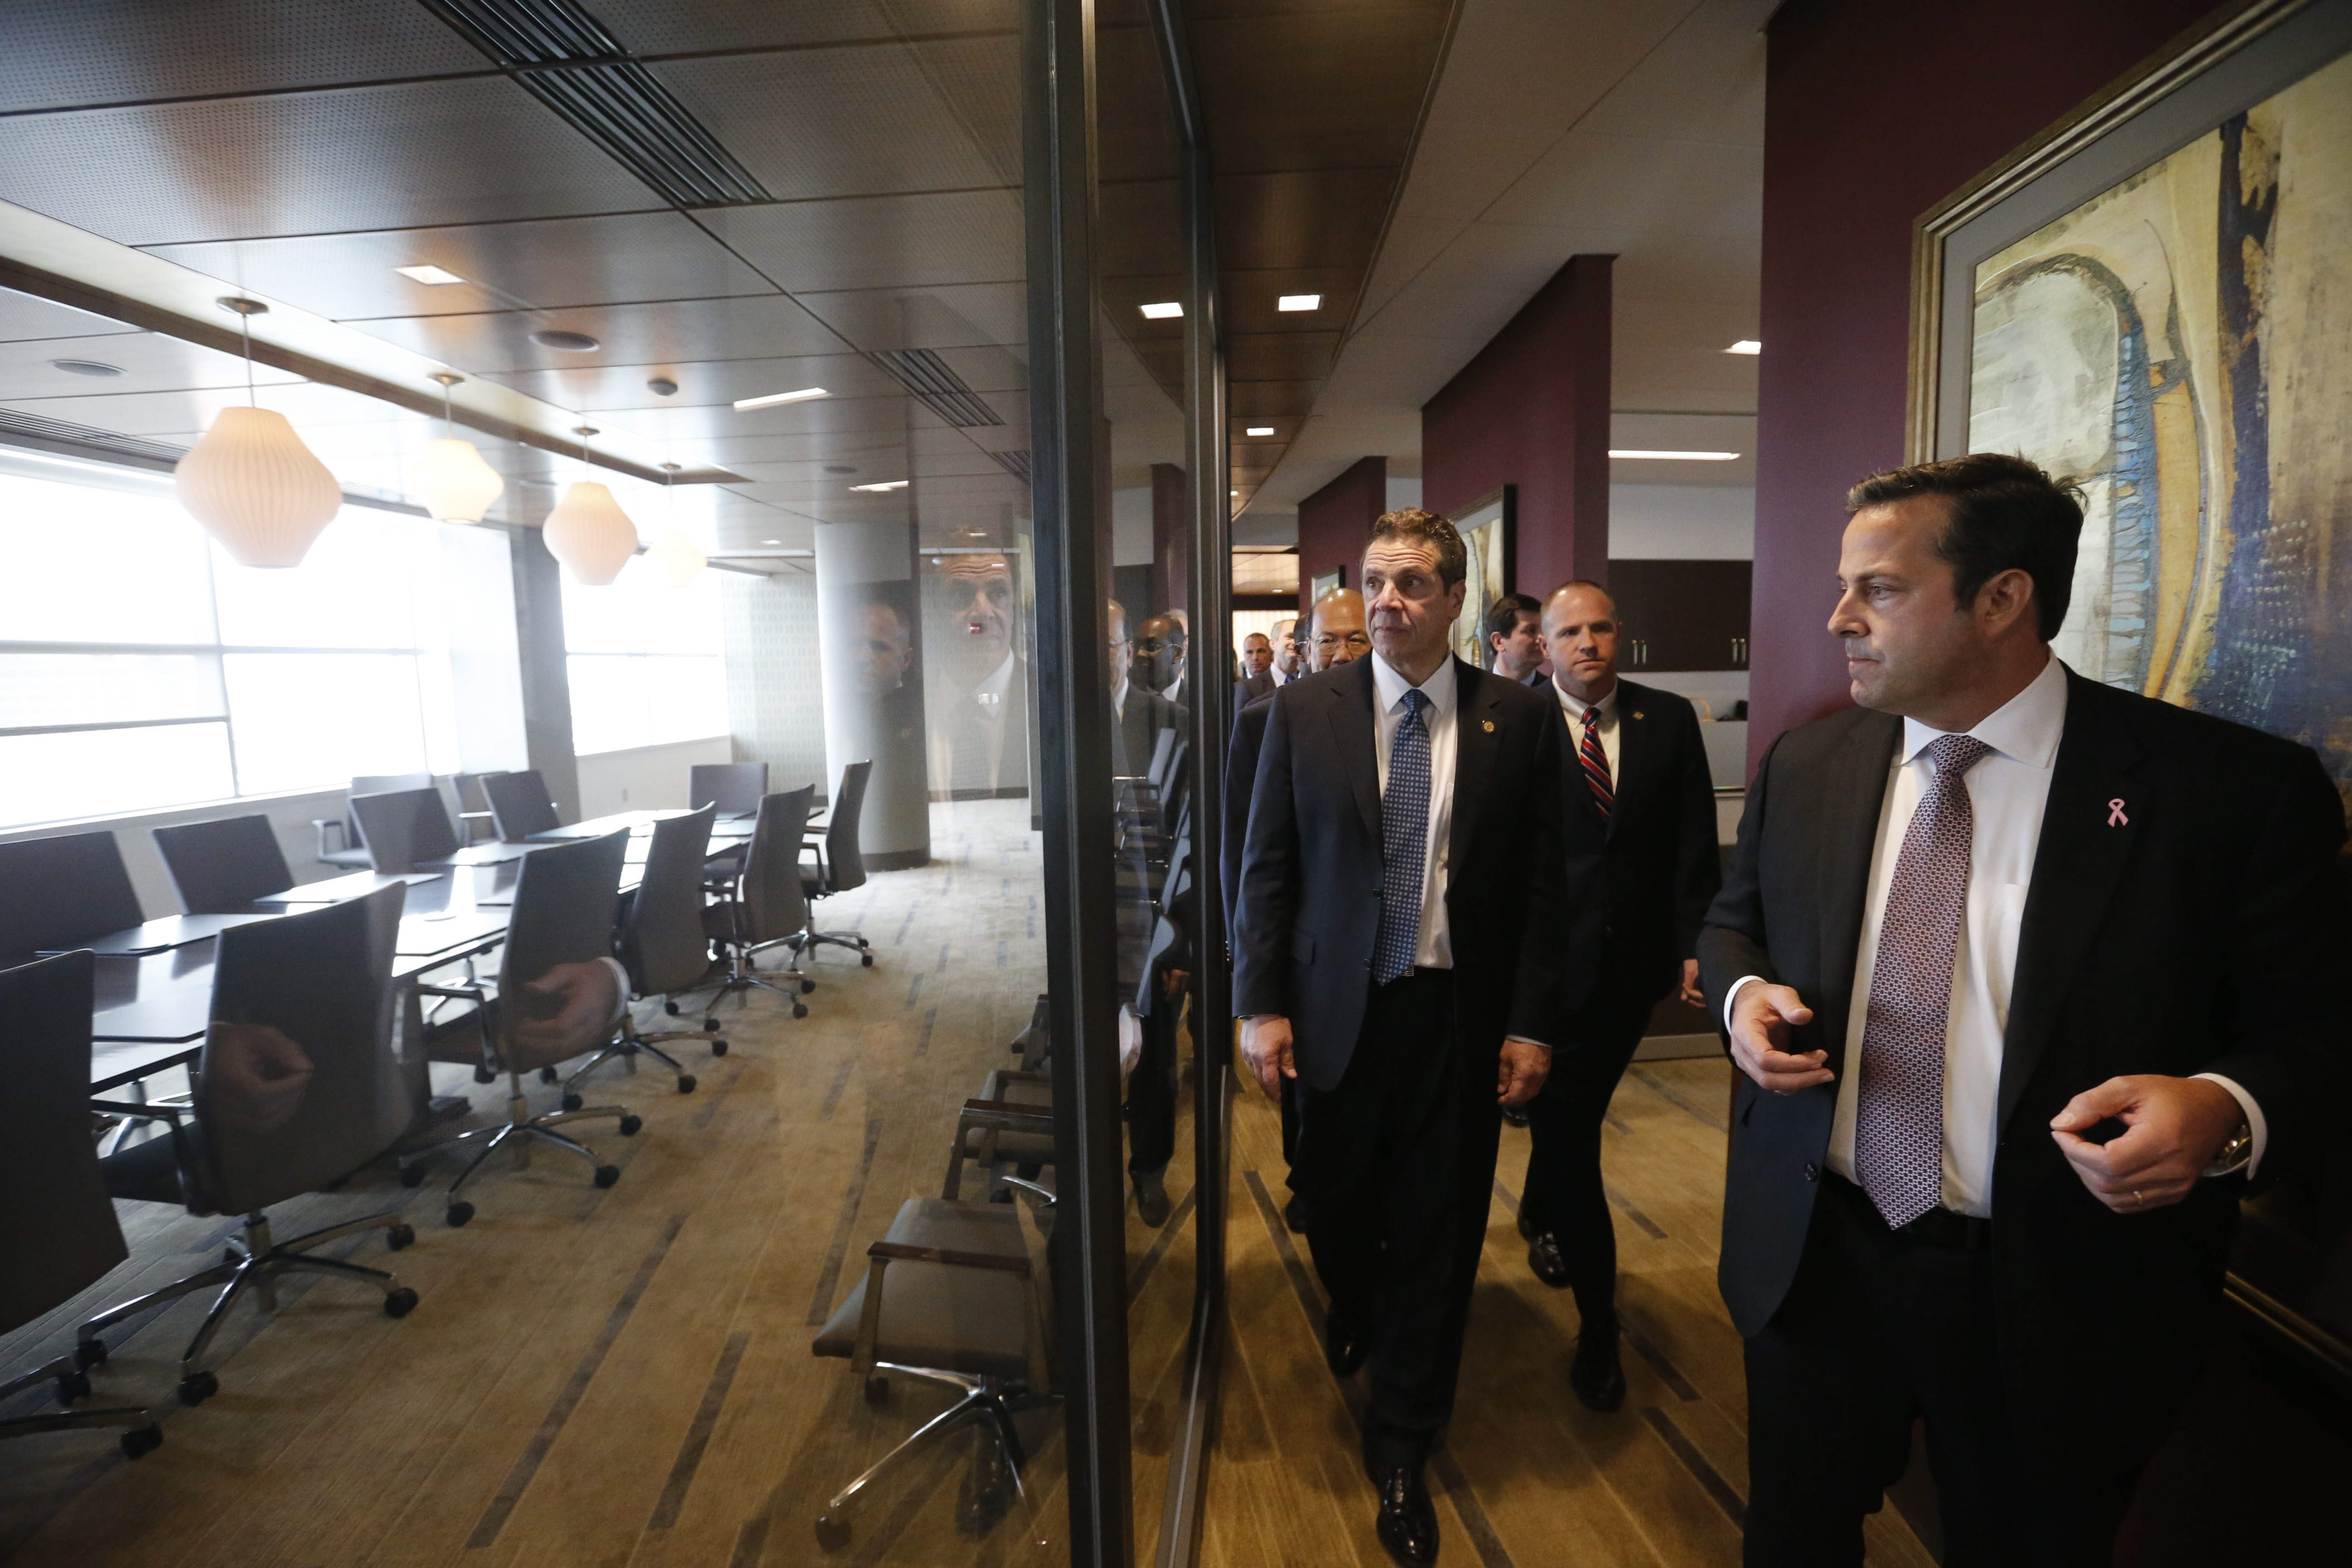 Athenex COO and CFO  Flint D. Besecker, right, gives a tour to Gov. Andrew Cuomo and other dignitaries inside the new Athenex facility at Conventus in February 2016.  (Derek Gee/News file photo)